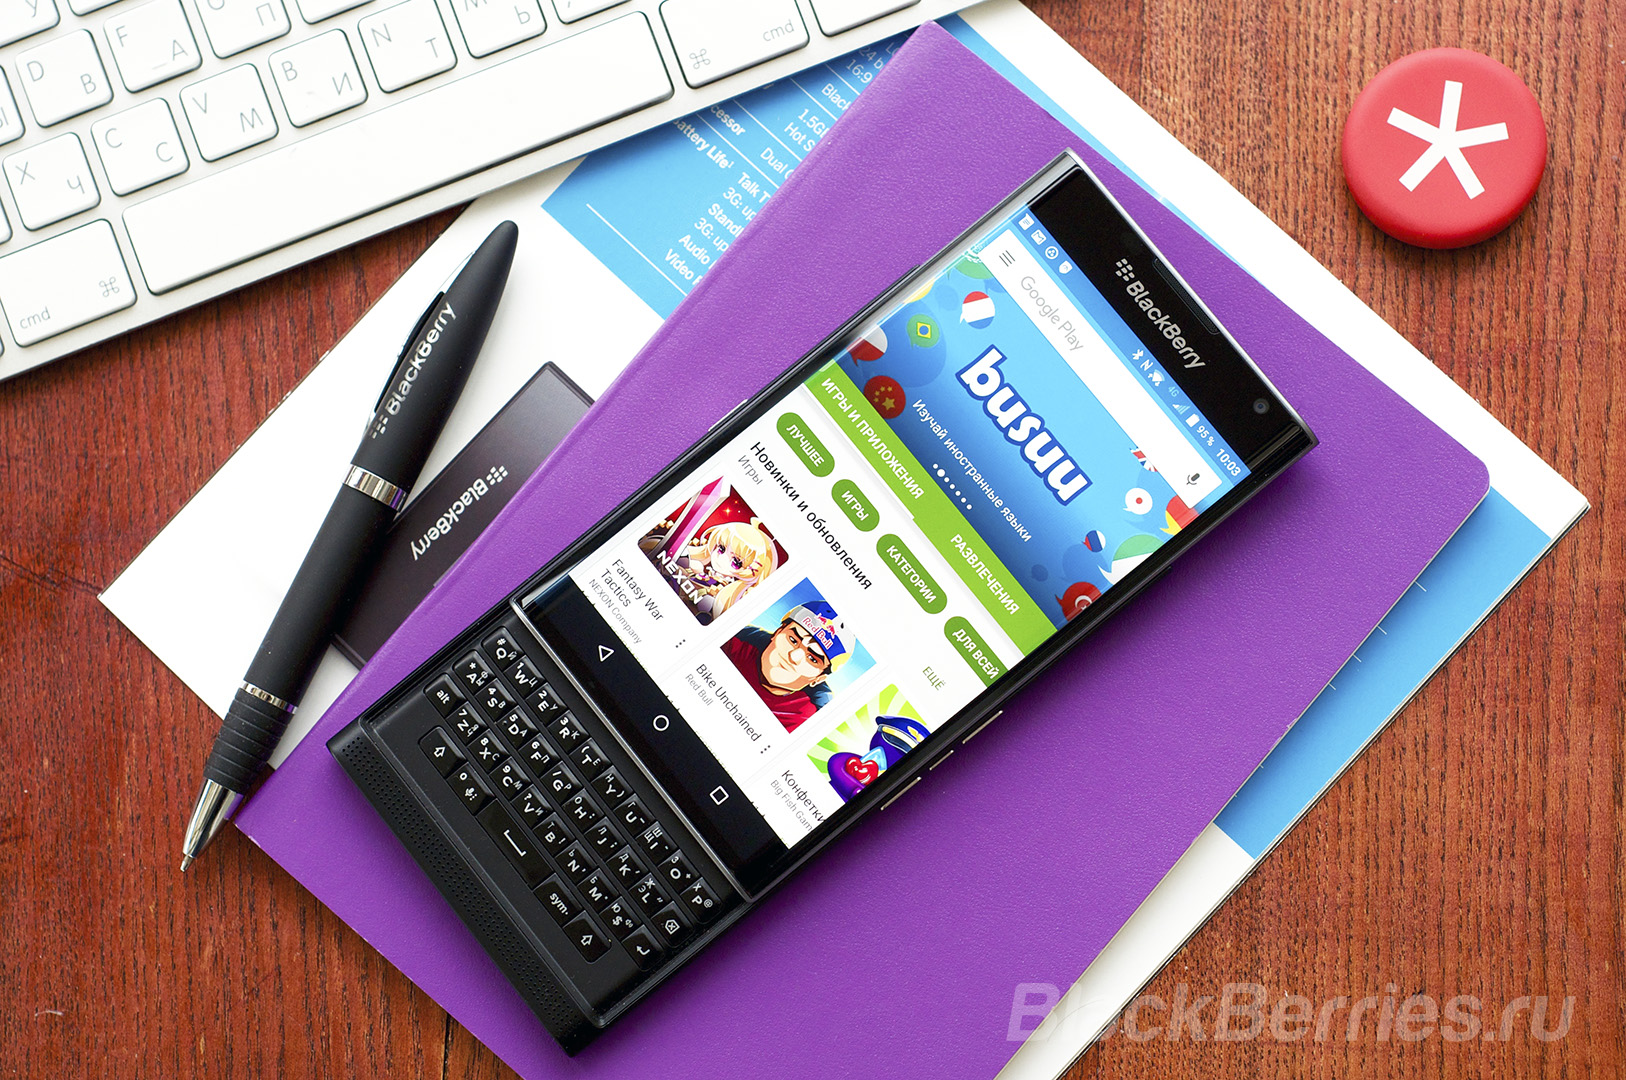 BlackBerry-Android-3.jpg